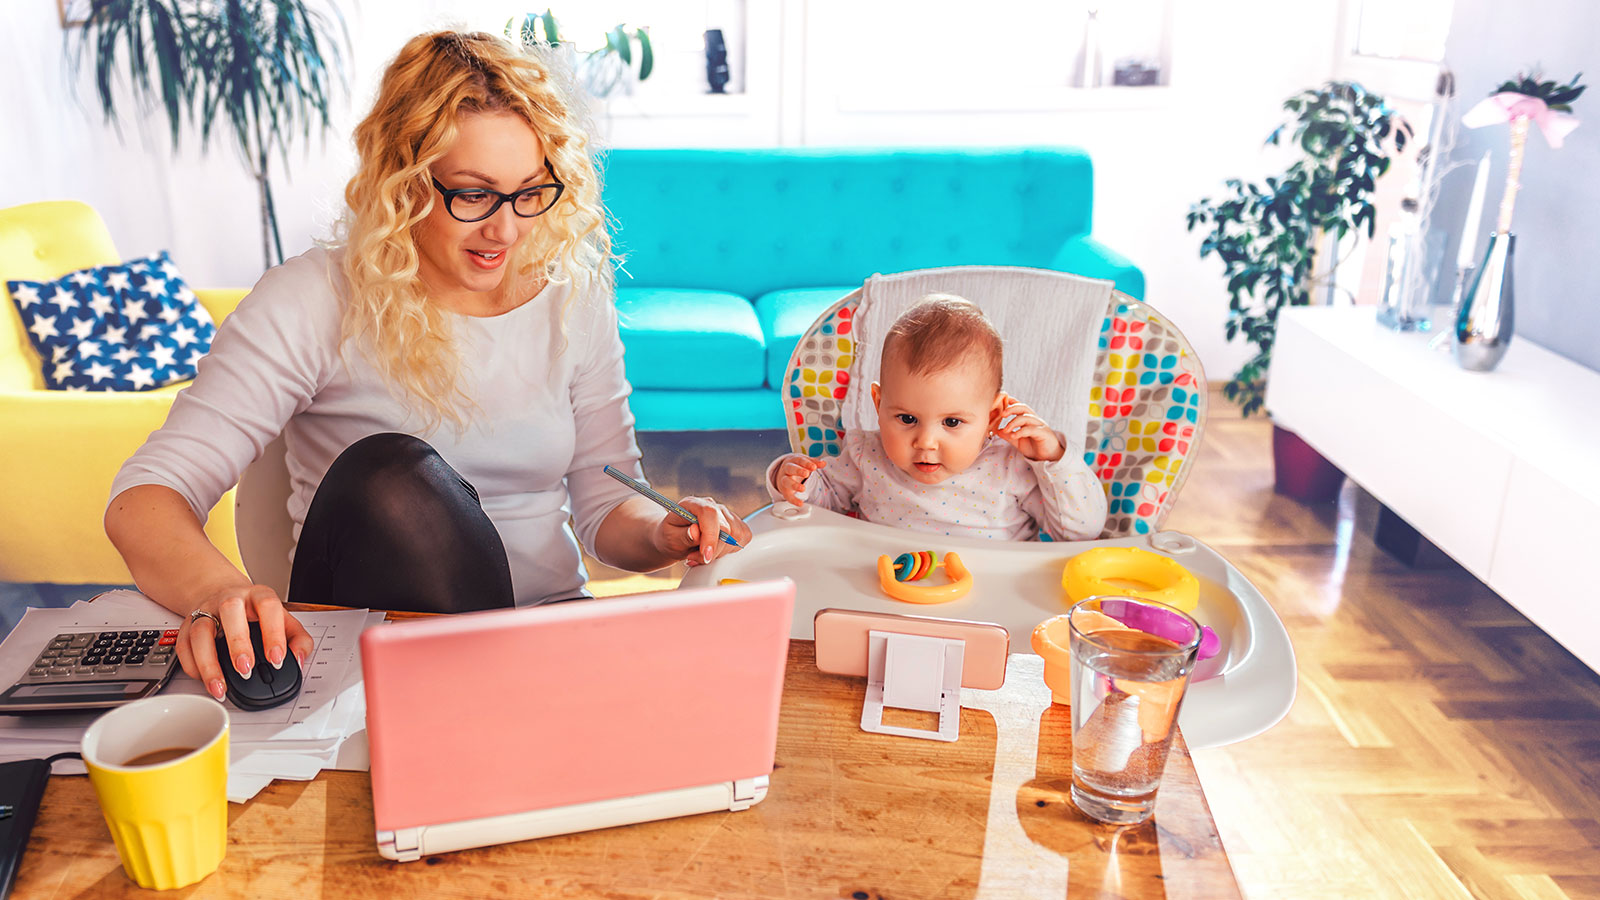 Mother working from home with a laptop in front of her and her toddler in highchair next to her